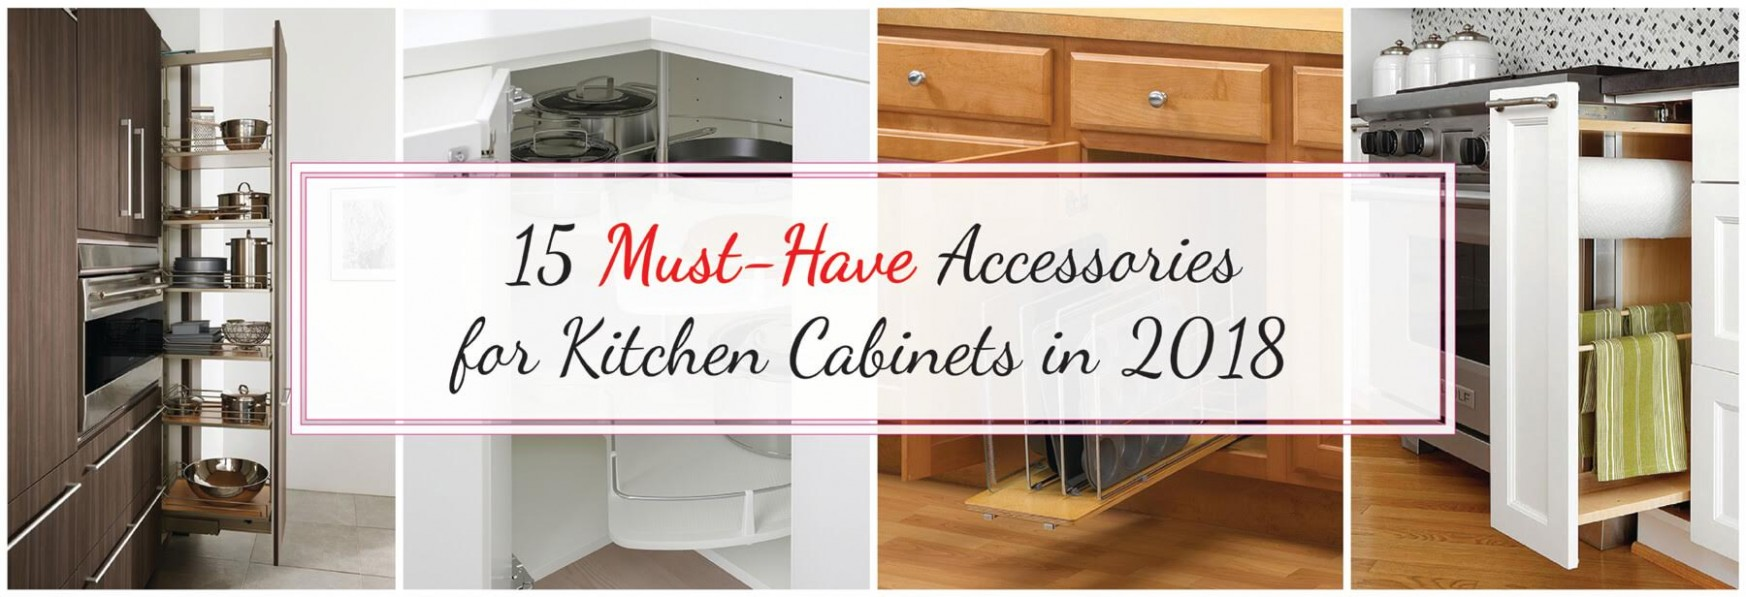 12 Must-Have Accessories for Kitchen Cabinets in 12 - Best  - Kitchen Cabinet Accessories That Are Popular